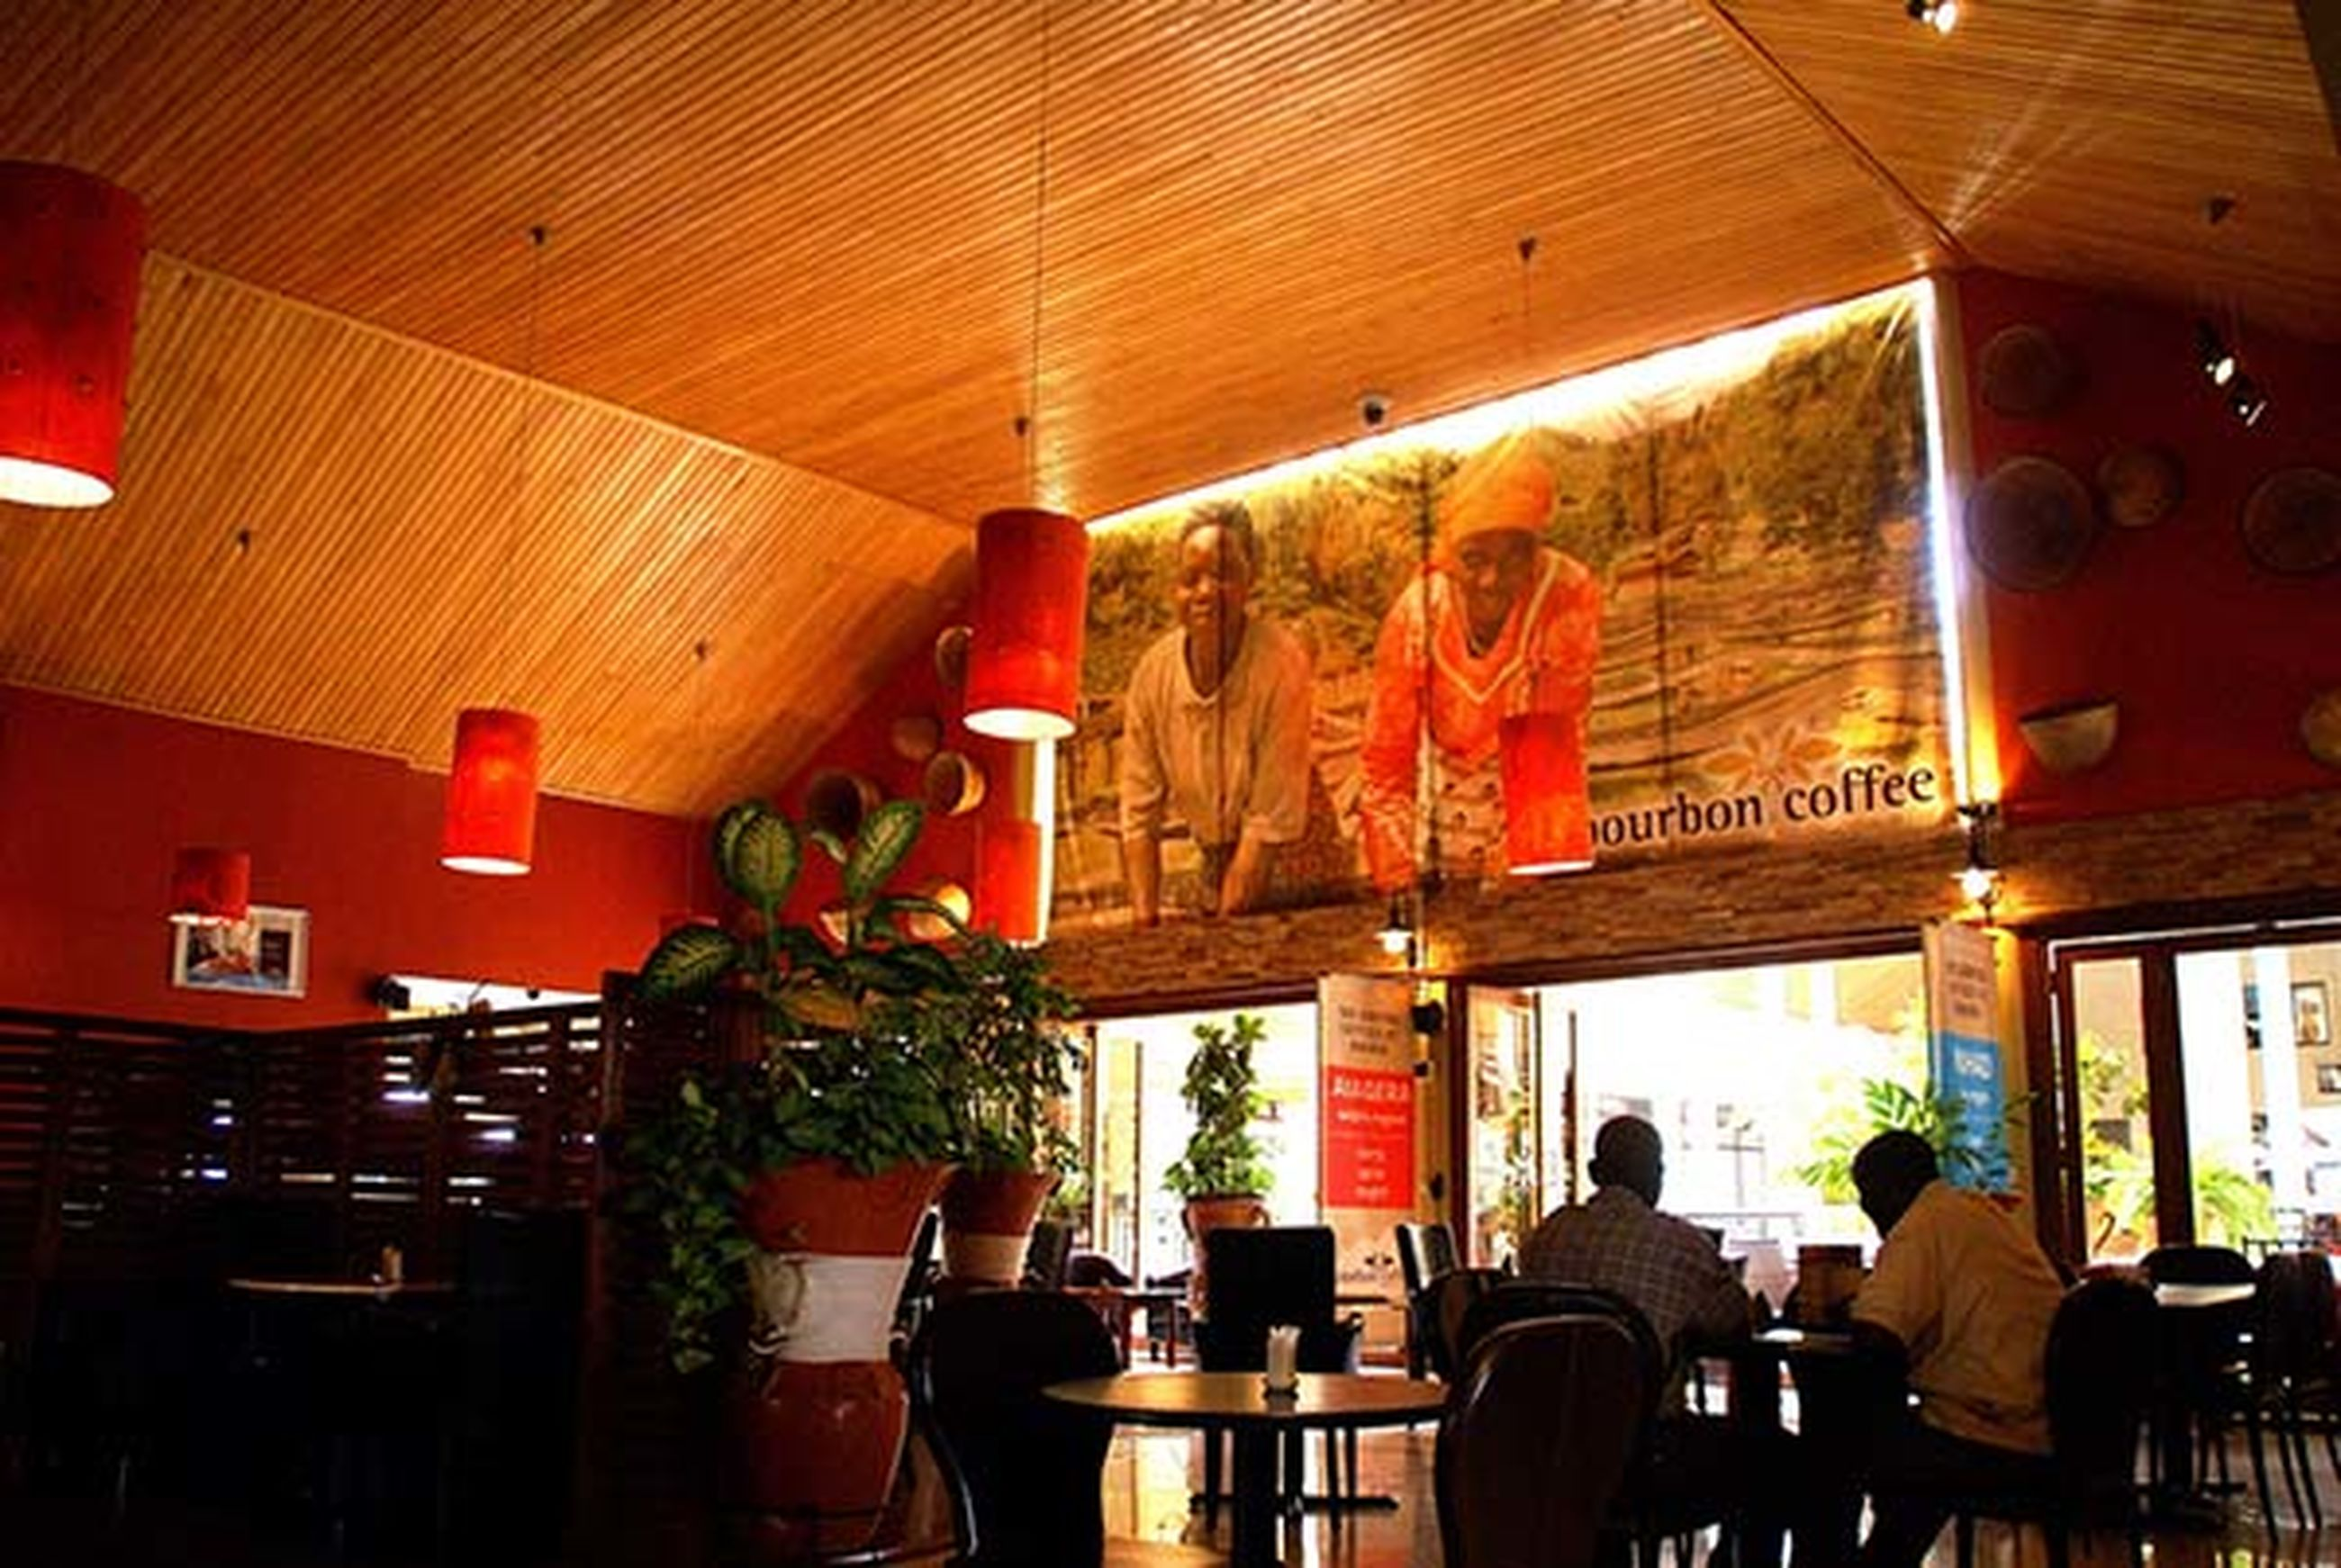 indoors, table, men, chair, cafe, food and drink, preparation, lifestyles, leisure activity, food and drink industry, culture, ceiling, person, restaurant, party - social event, red, place setting, arrangement, nightlife, stage - performance space, bar - drink establishment, dining